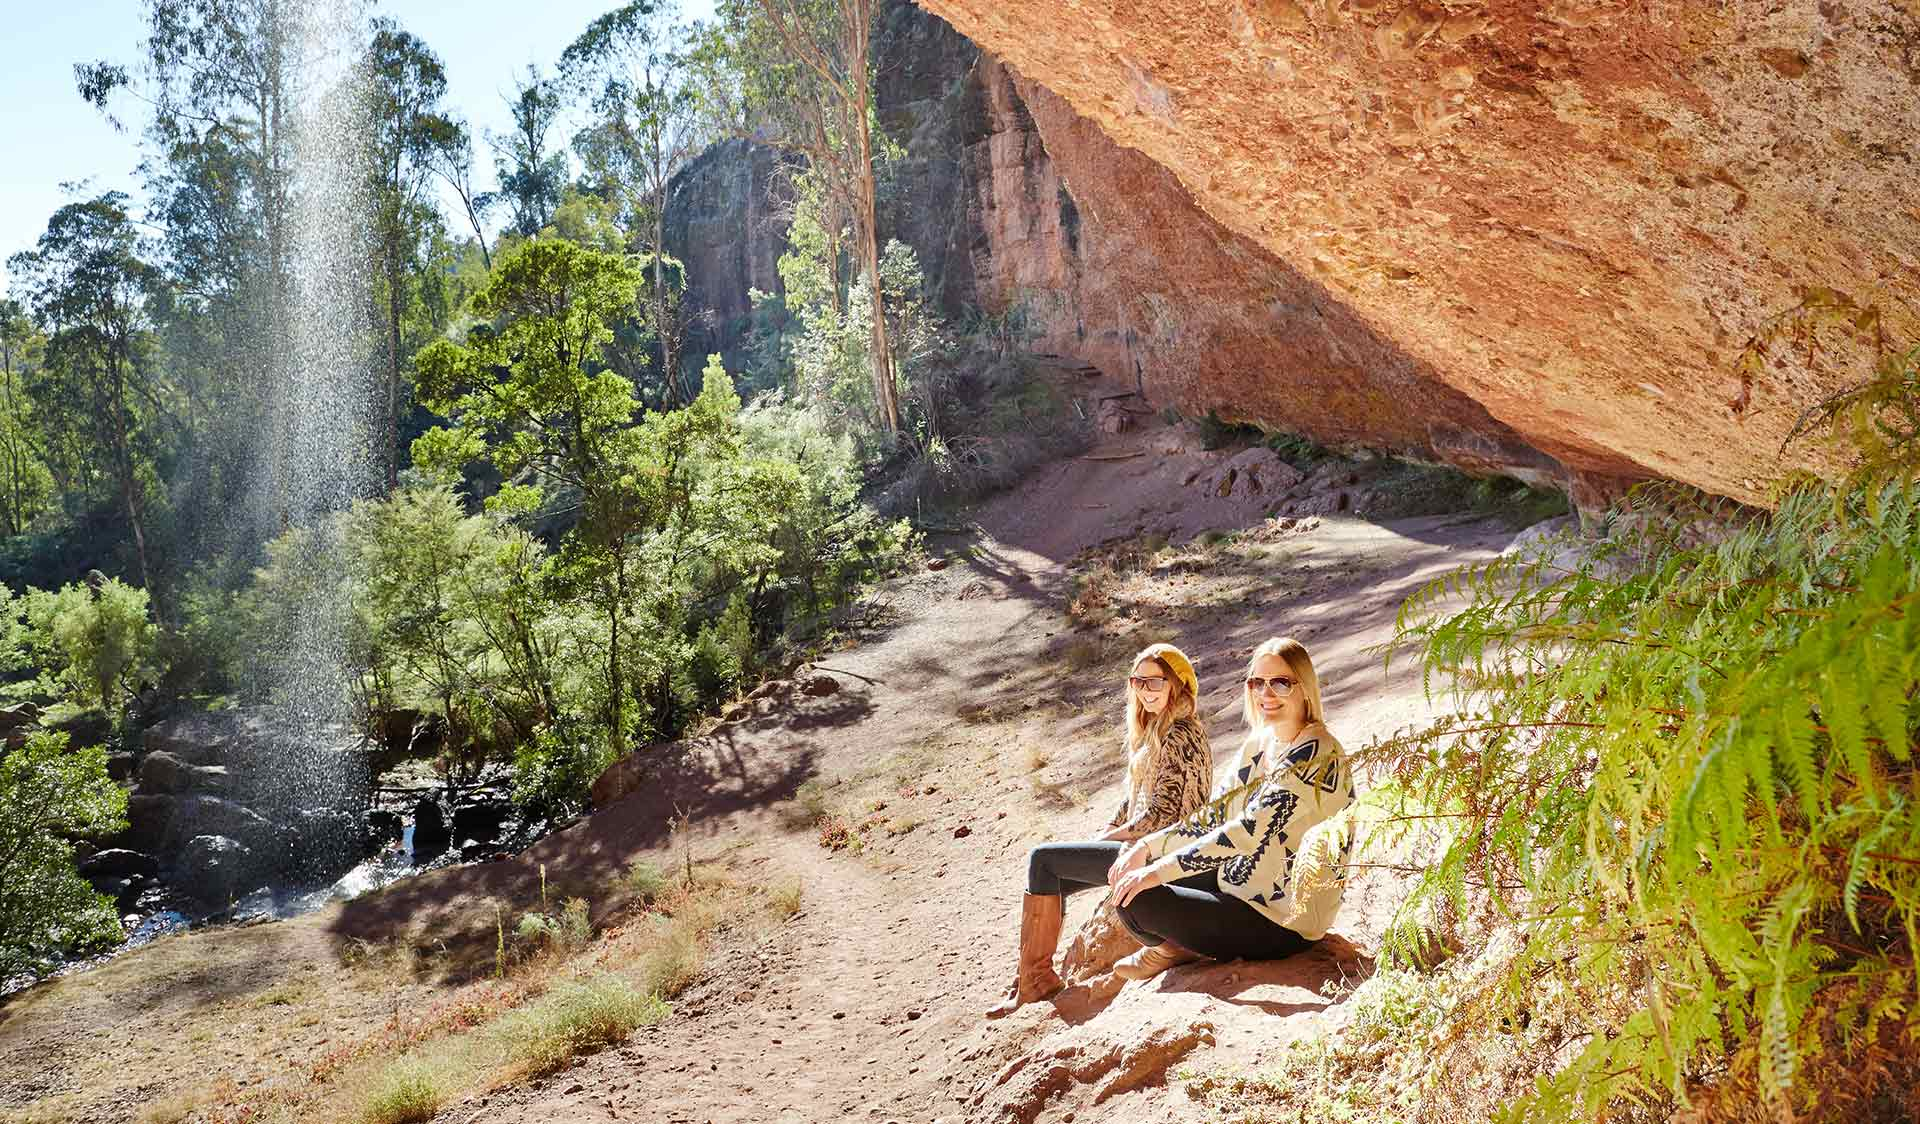 Two women sit beside the ephemeral Paradise Falls located near the headwaters of the King River in the Alpine National Park.